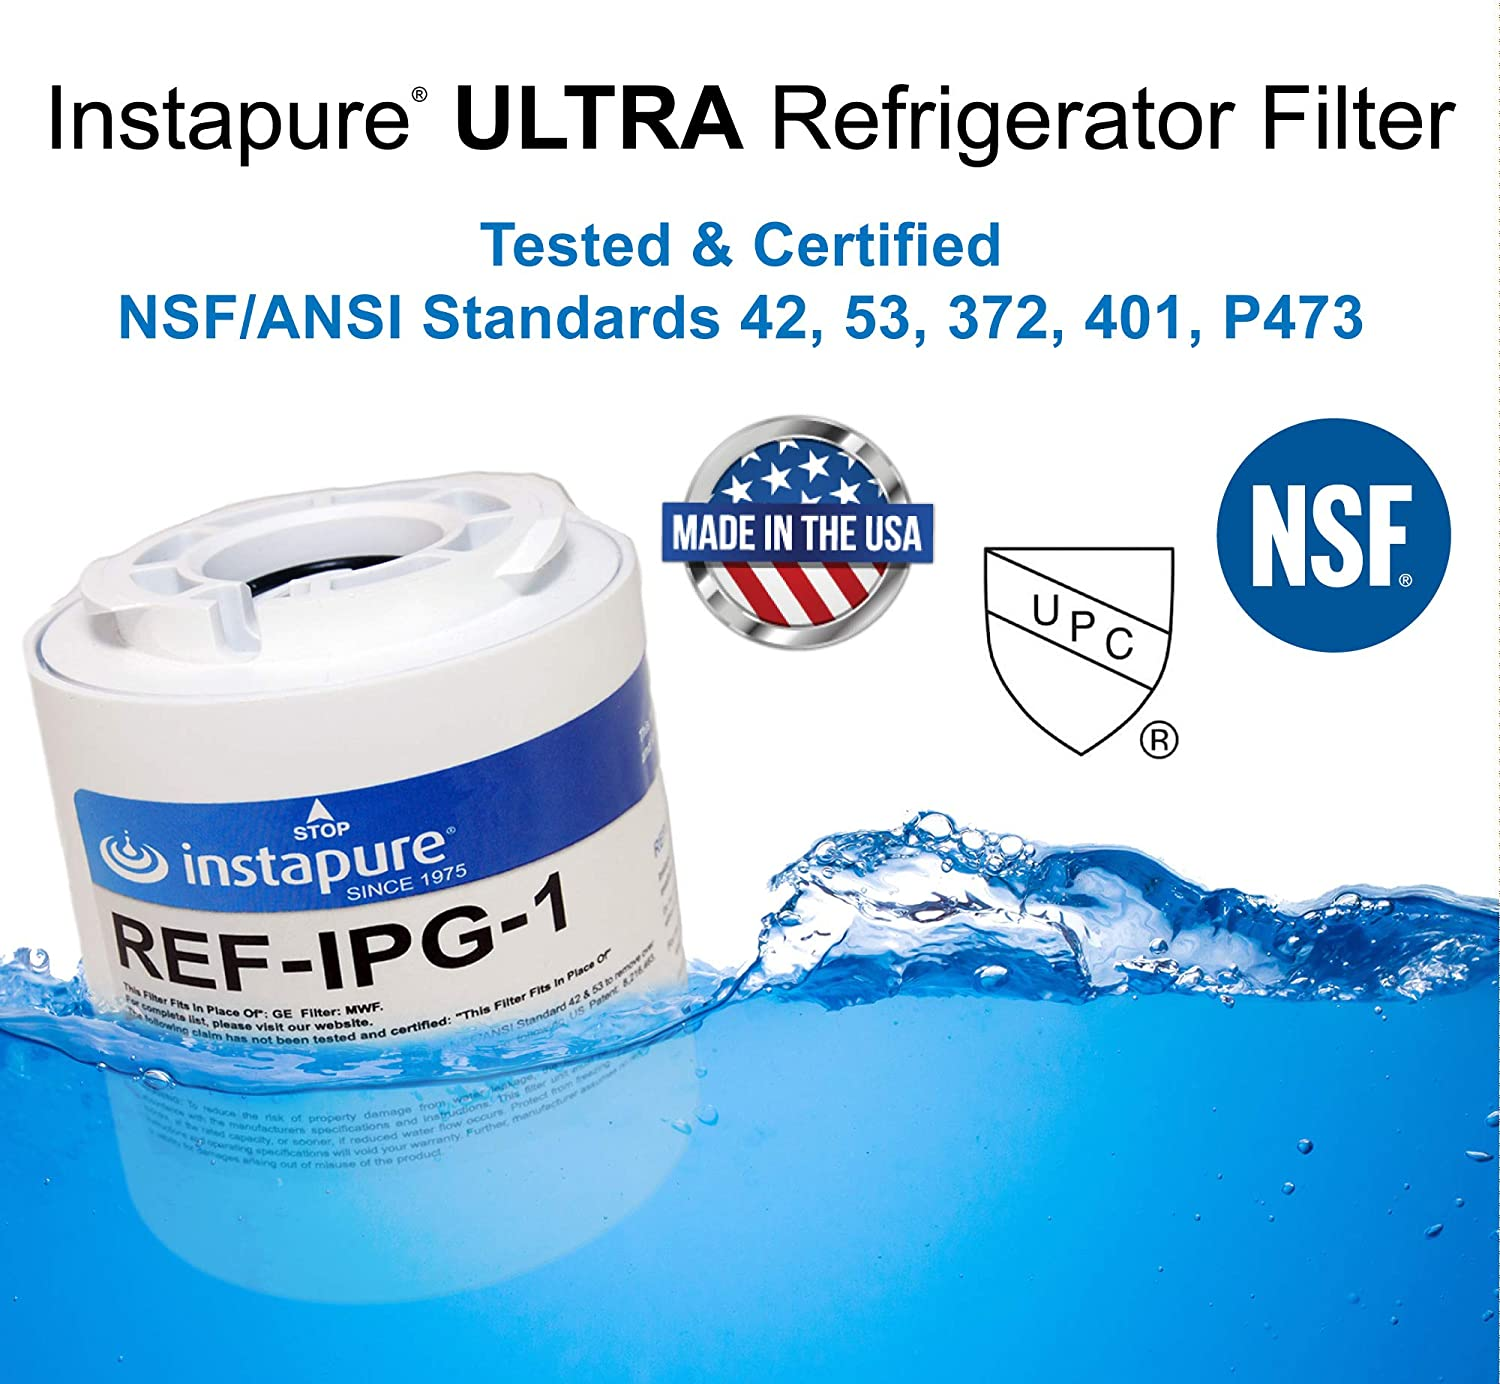 Instapure REF-IPG-1 ULTRA Refrigerator Filter GE MWFA Tested /& Certified by NSF to ANSI//NSF 42 and 53 Instapure Brands Inc. and more MADE IN USA GE GWF06 Compatible with GE MWF